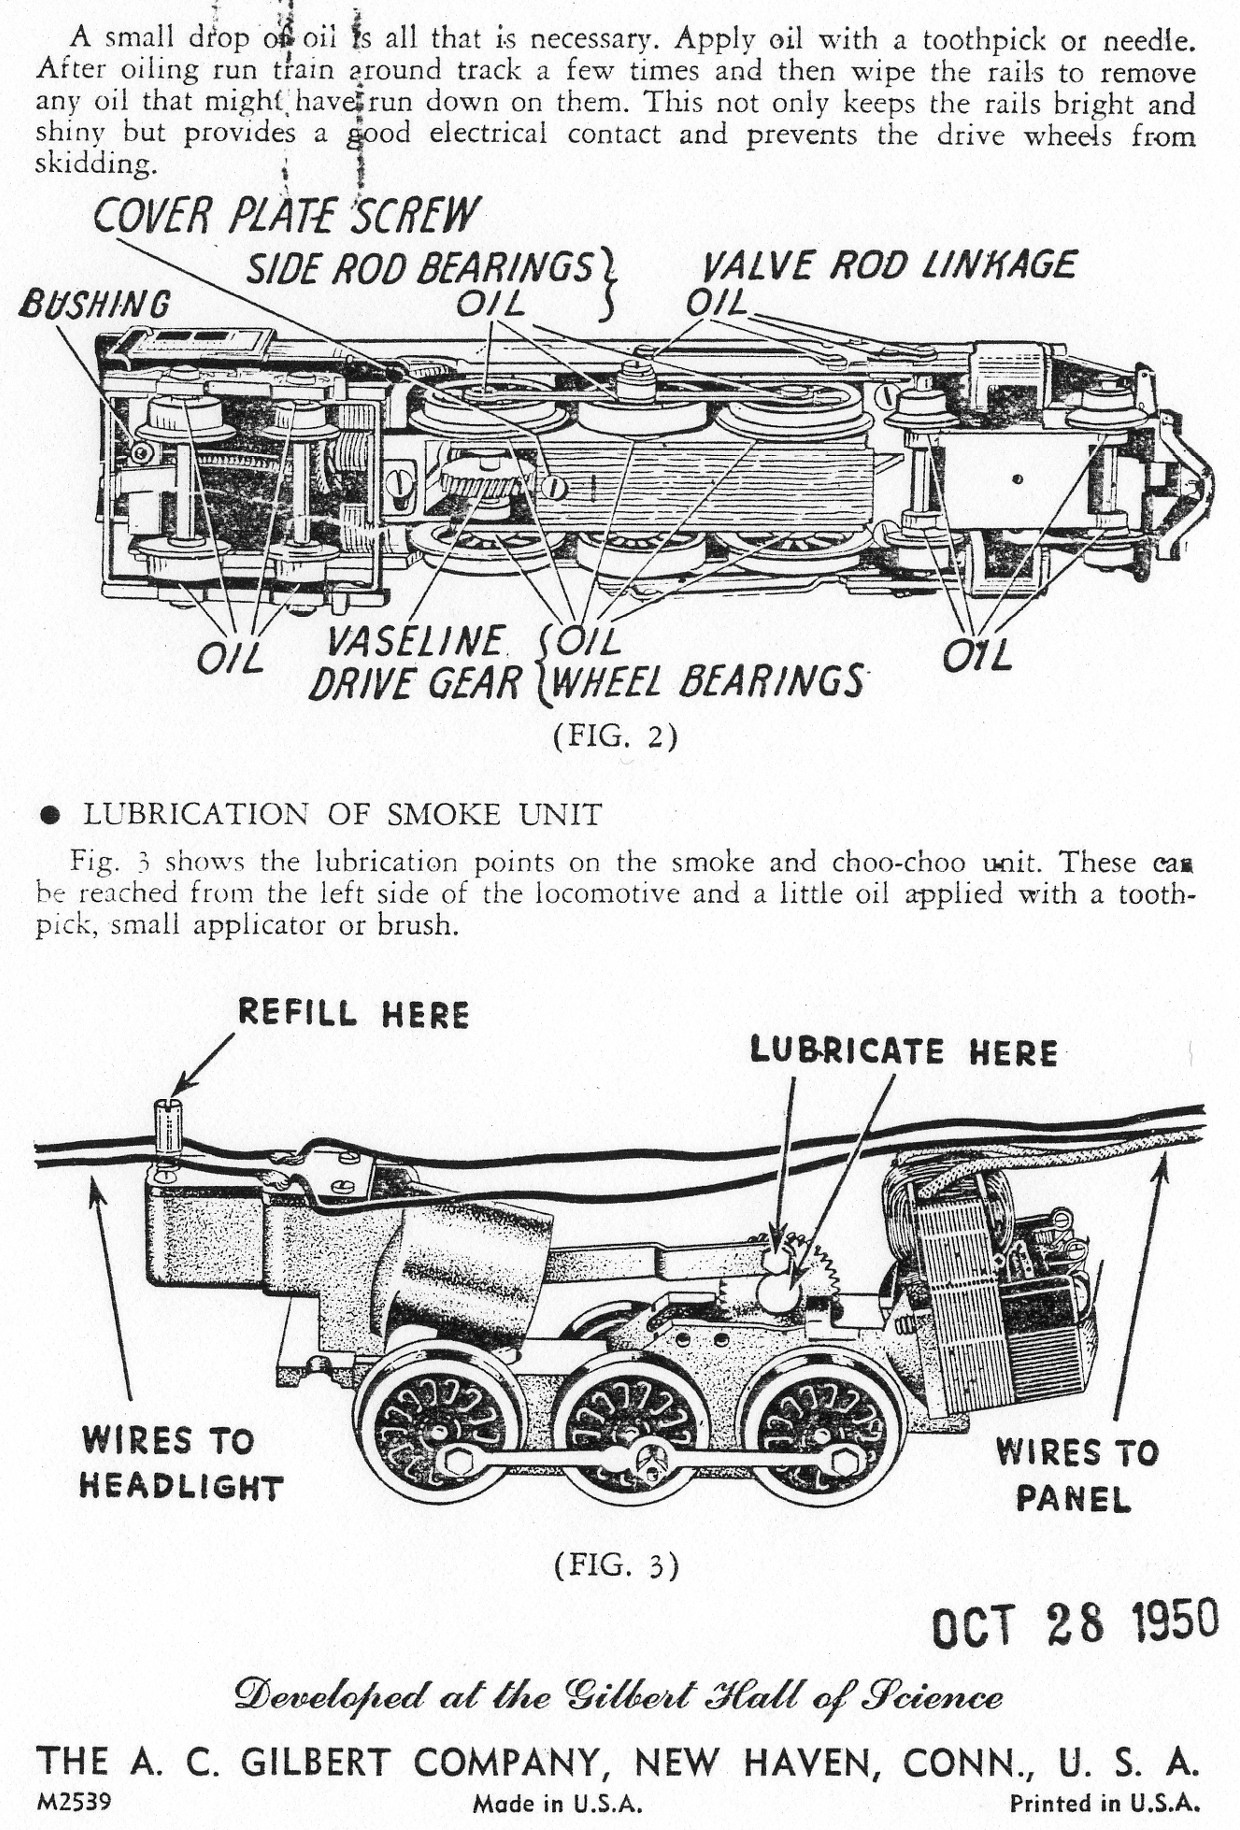 Worm Drive Lionel Locomotive Wiring Diagram House American Flyer Diagrams Instructions Traindr Rh Com Schematics Crossing